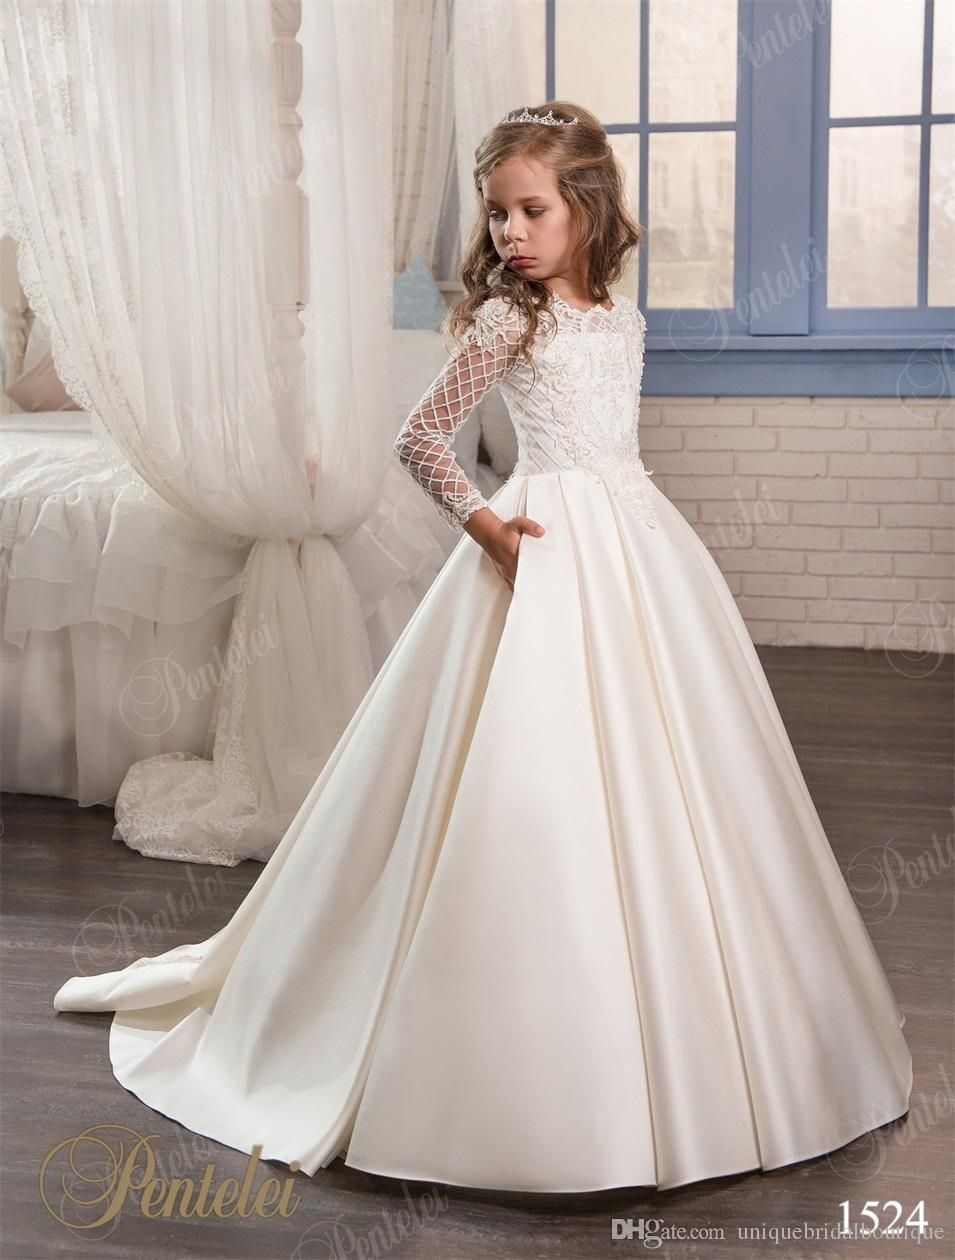 Wedding Dresses For Small Girls Dress For Country Wedding Guest Check More At Http Girls Formal Dresses Ivory Flower Girl Dresses Wedding Dresses For Girls,New Wedding Dress Design 2020 In Pakistan For Girl